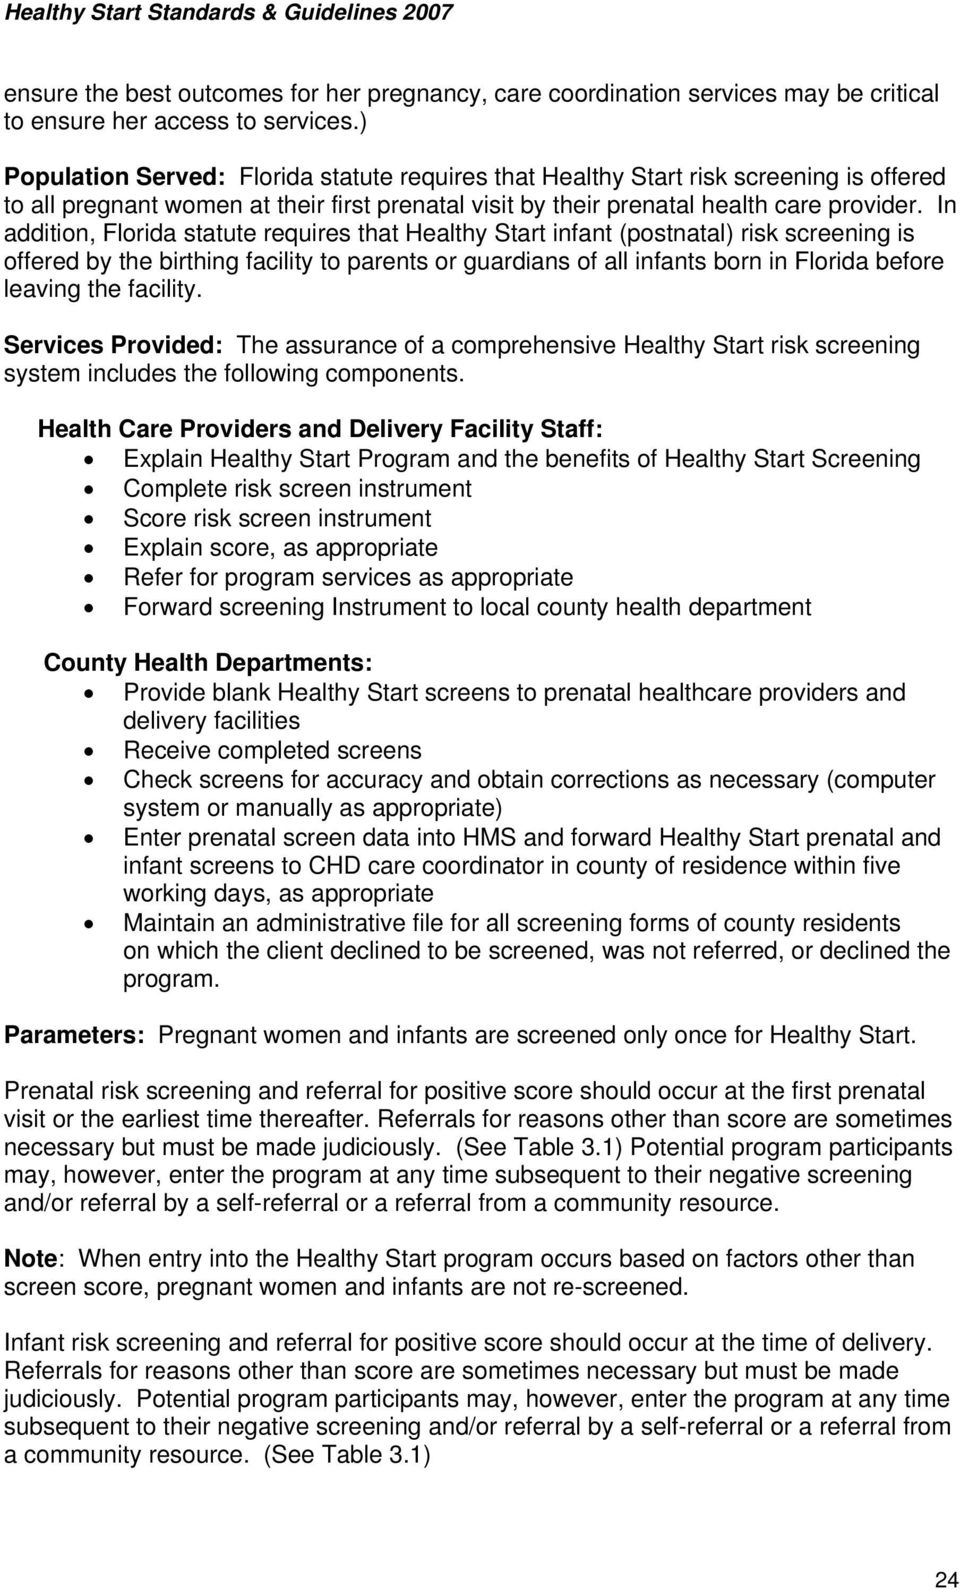 In addition, Florida statute requires that Healthy Start infant (postnatal) risk screening is offered by the birthing facility to parents or guardians of all infants born in Florida before leaving